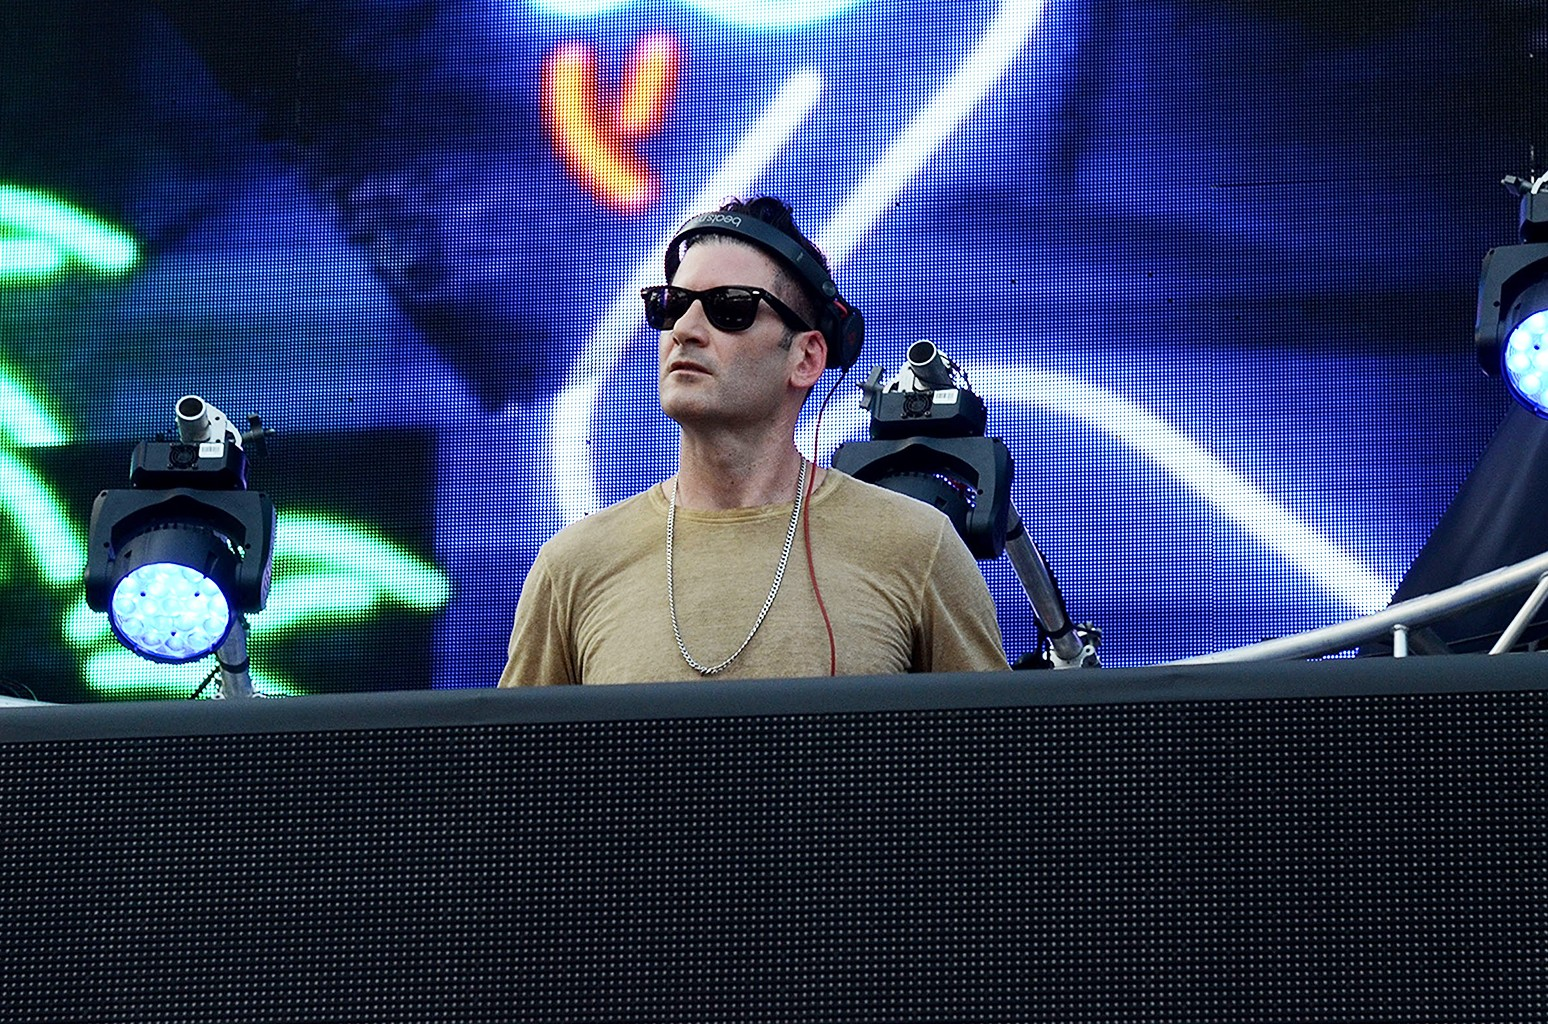 Destructo performs at Randall's Island on Sept. 4, 2015 in New York City.